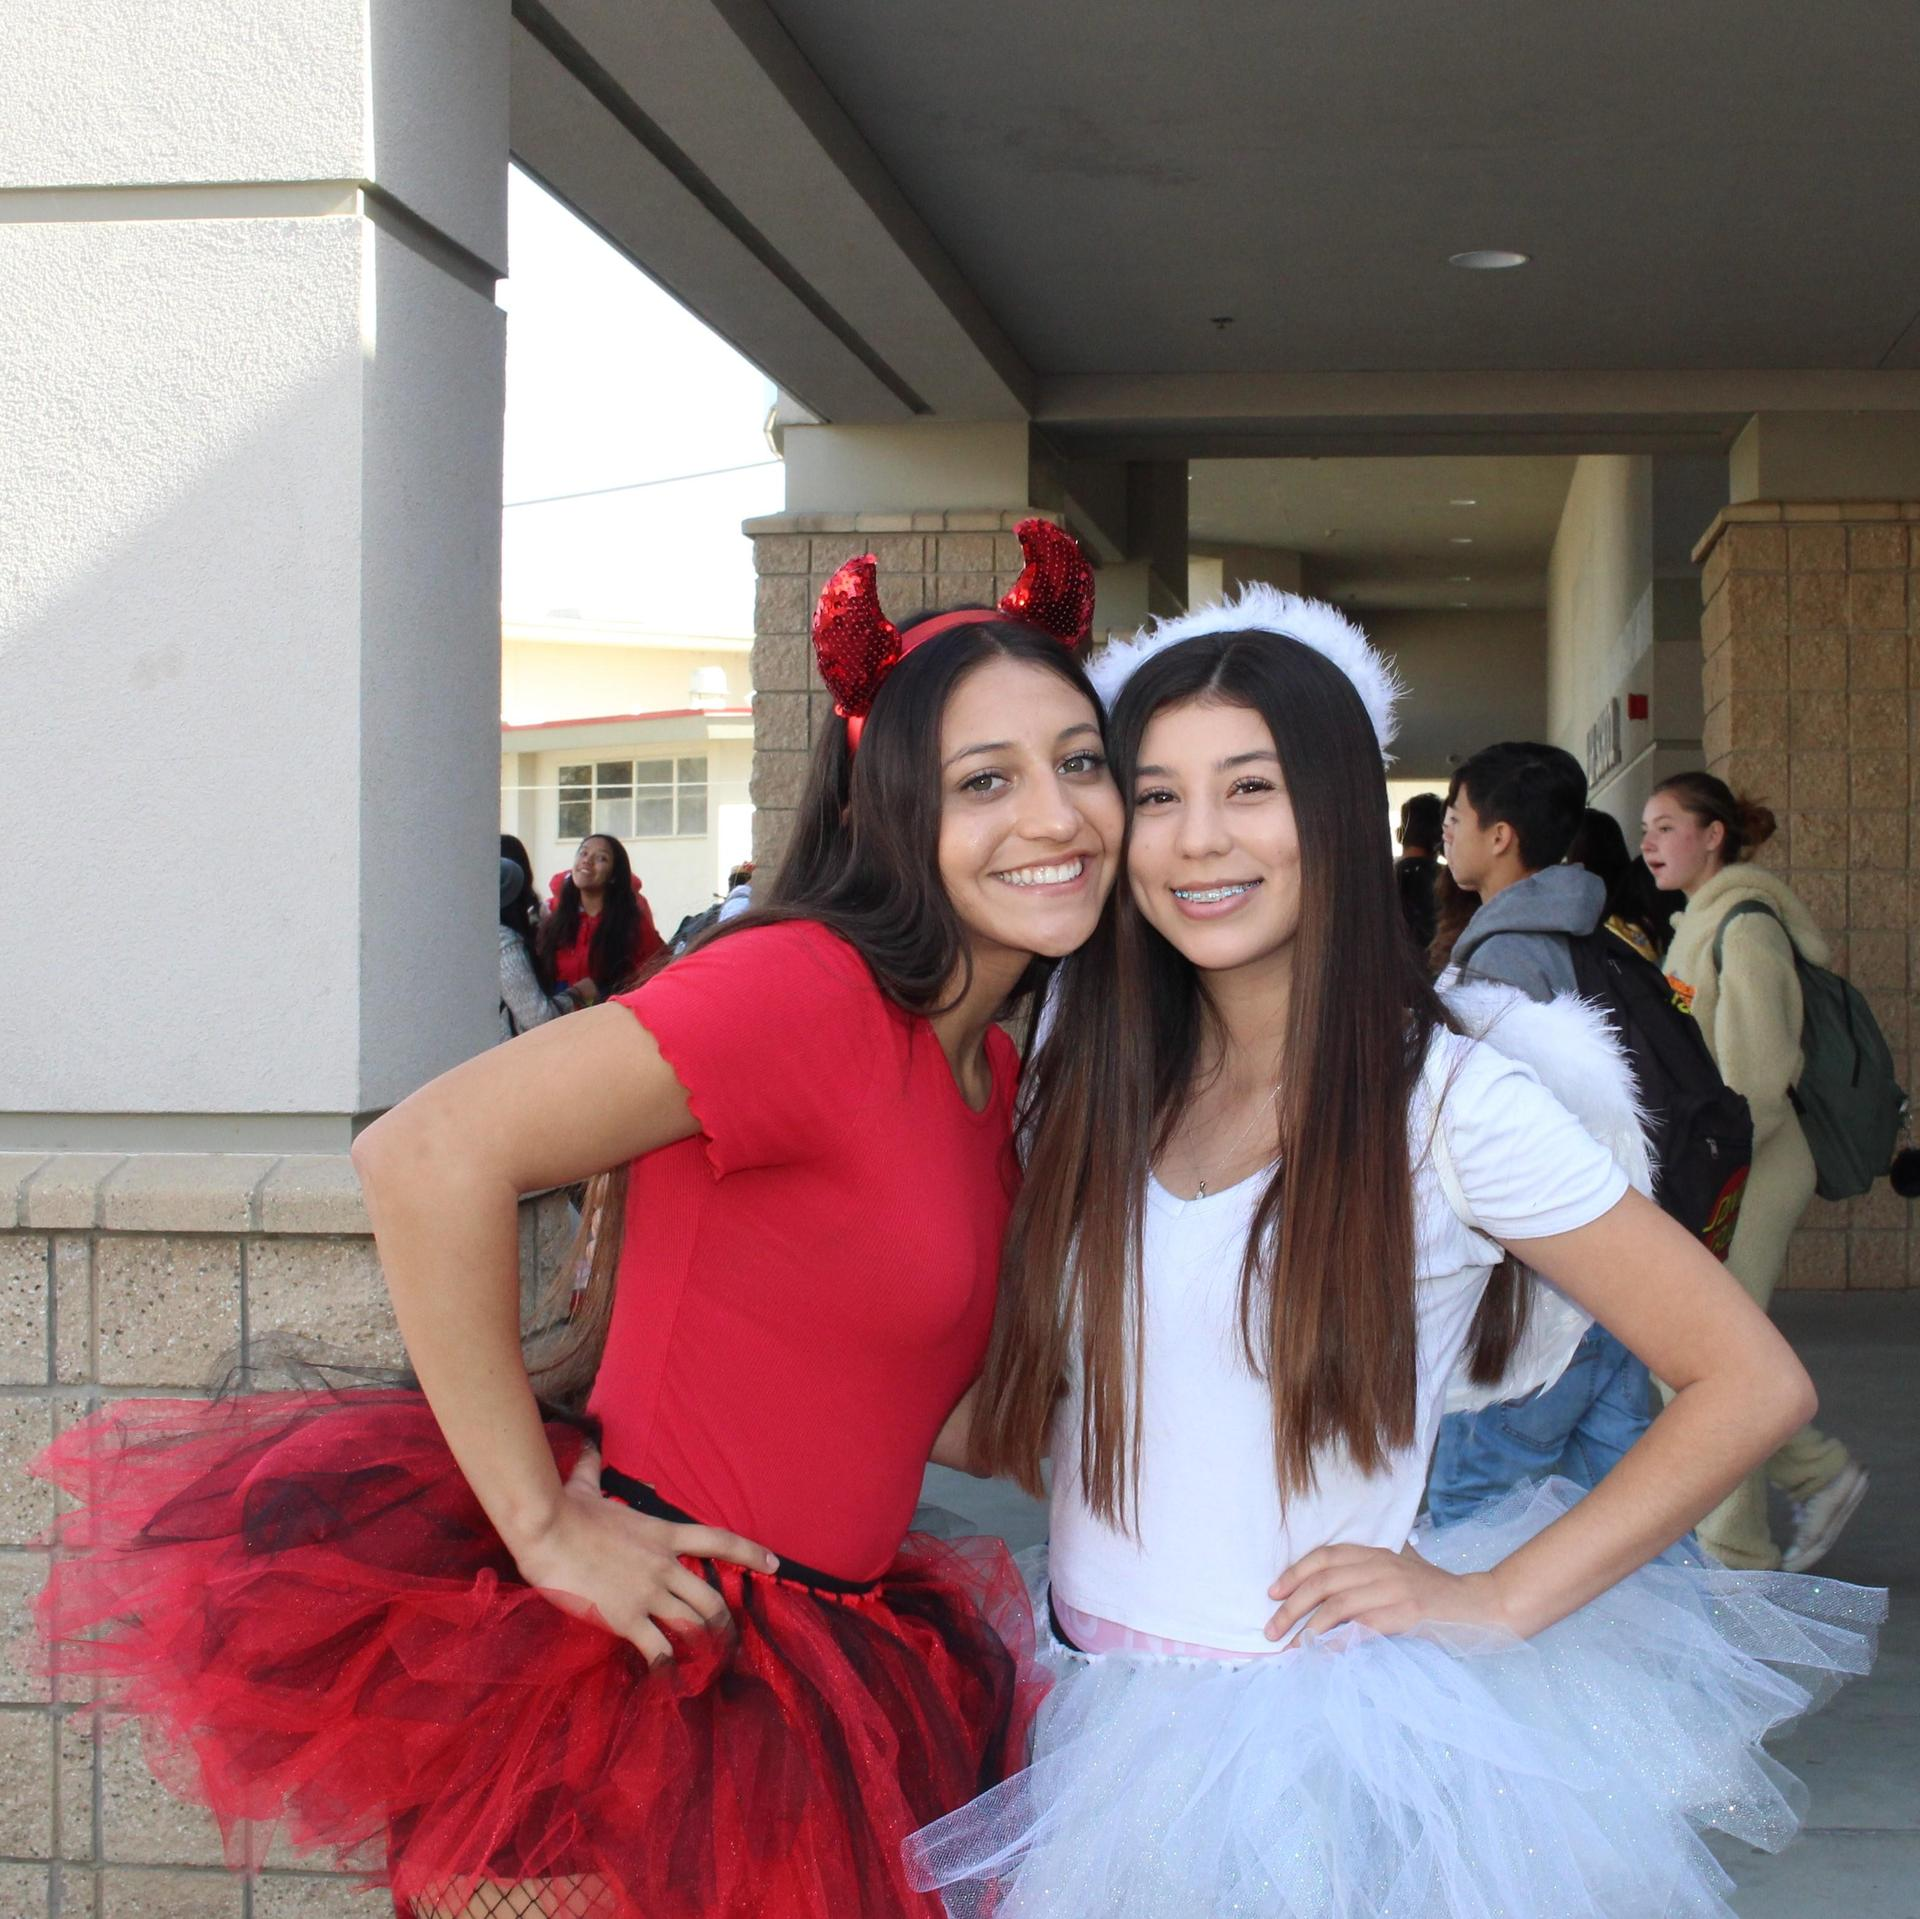 Bella Martinez dressed as the devil and Alyzbeth Escobar dressed as an angel